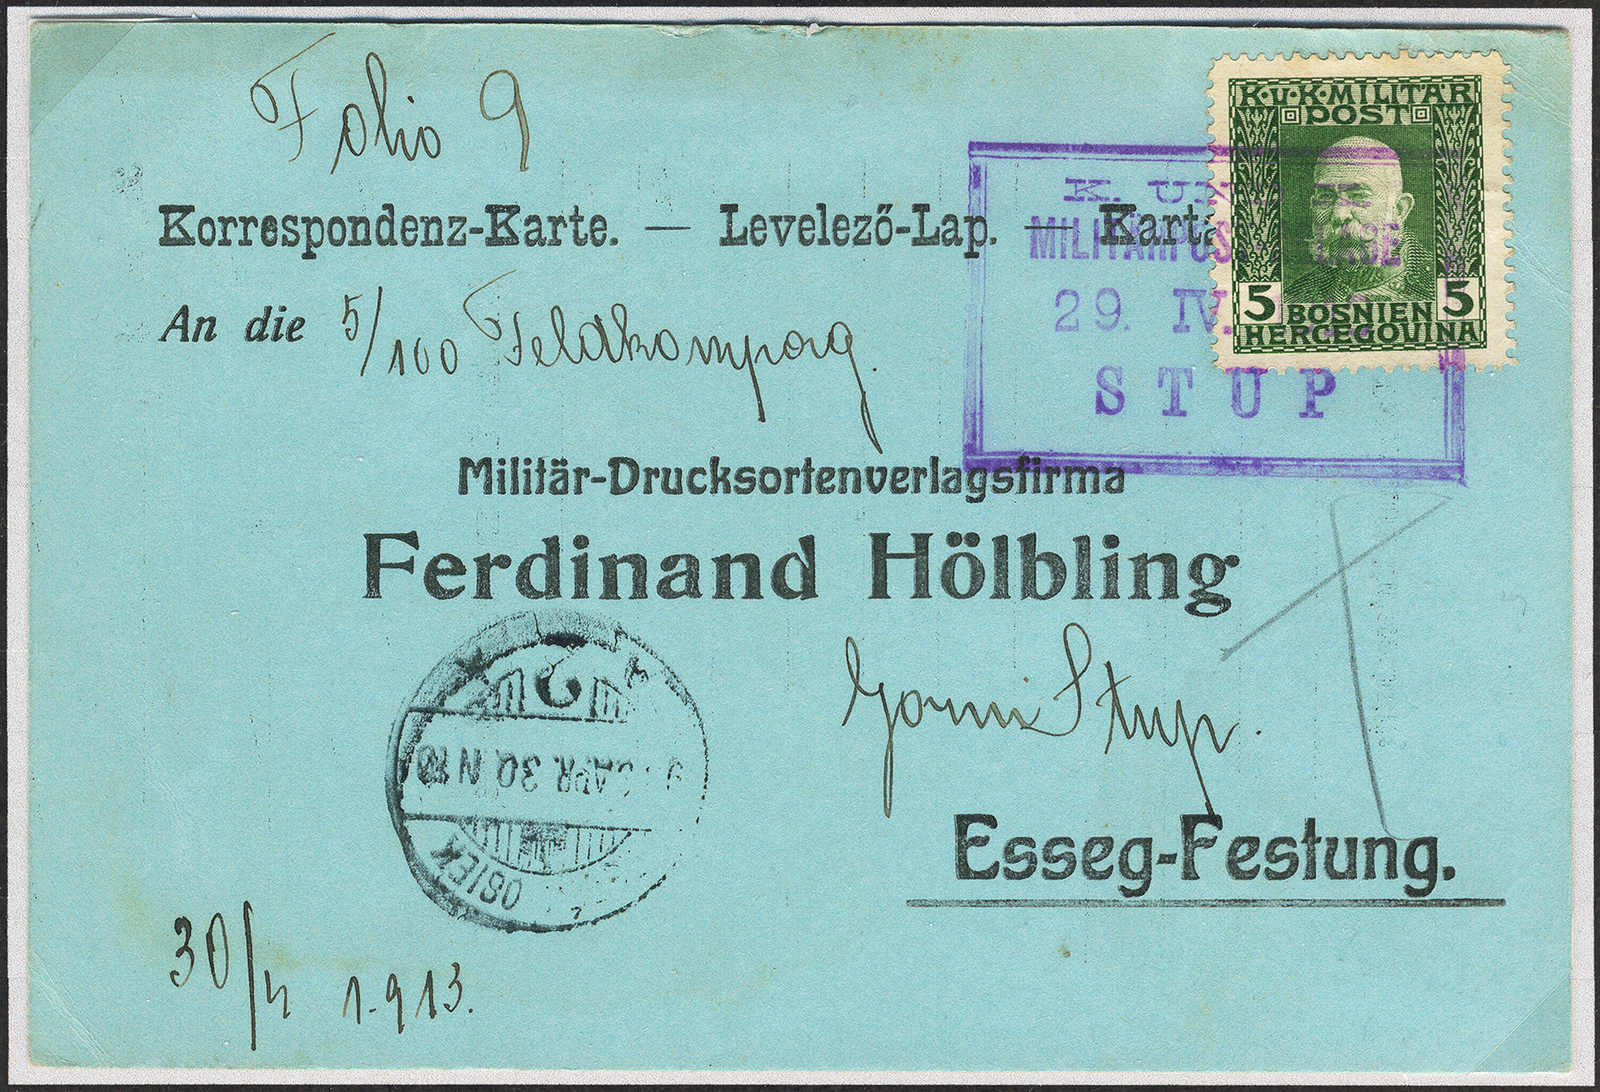 Lot 40645 - europa bosnien und herzegowina (österr.) -  classicphil GmbH 6'th classicphil Auction - Day 3